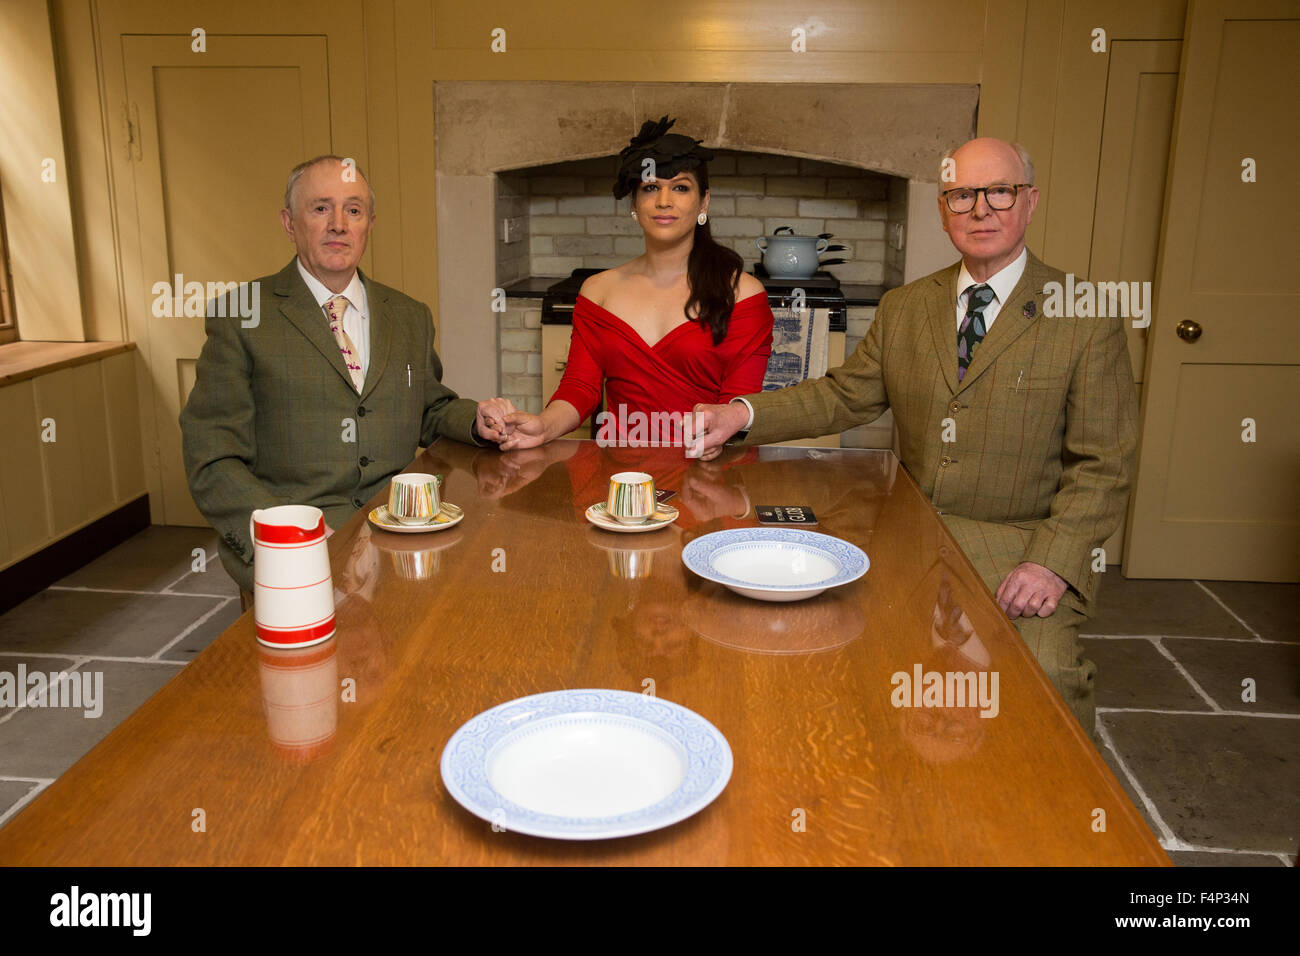 Gilbert Proesch, 72, and George Passmore, 73, with Victoria in their studio ahead of 'Transformation' at - Stock Image